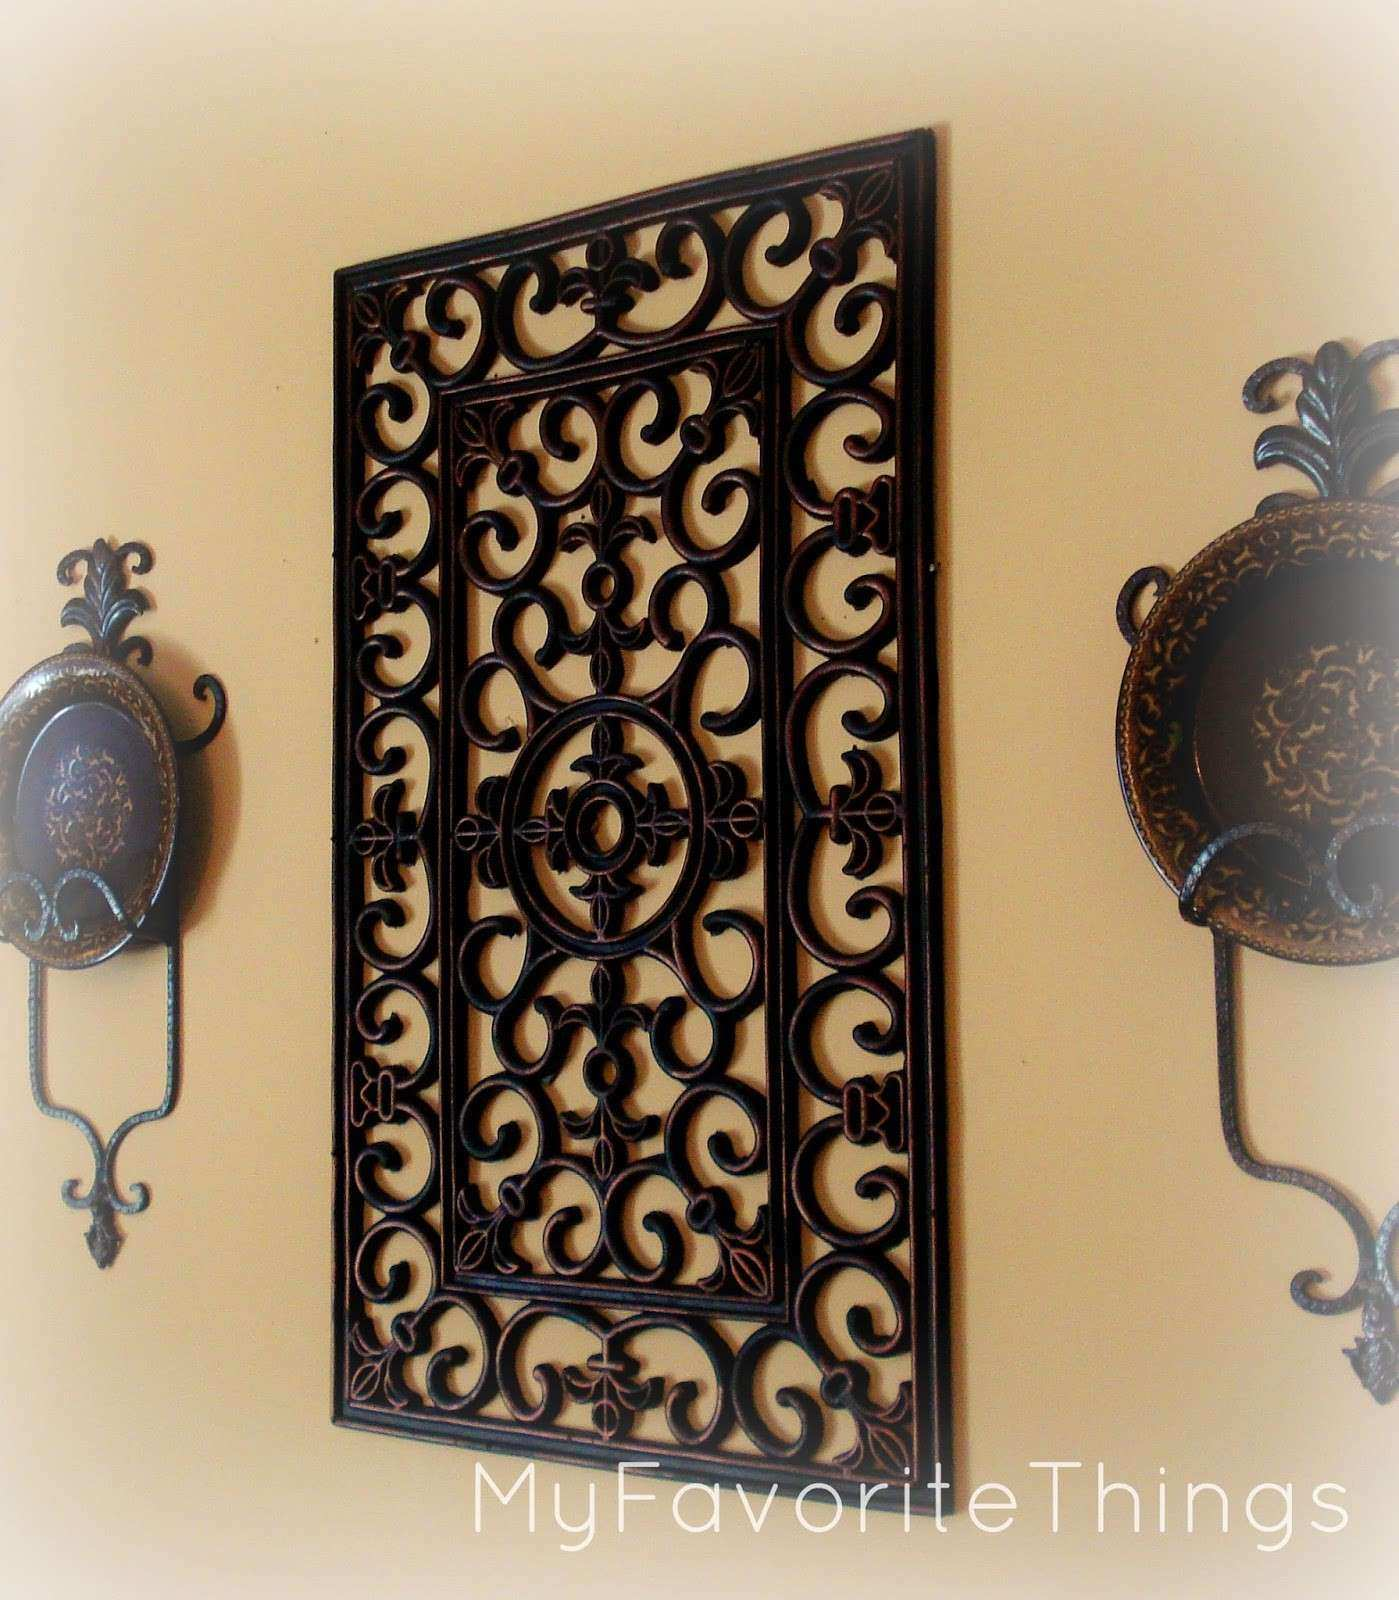 hit photos objects wrought images ideas wall panels decor tuscan and decorative iron